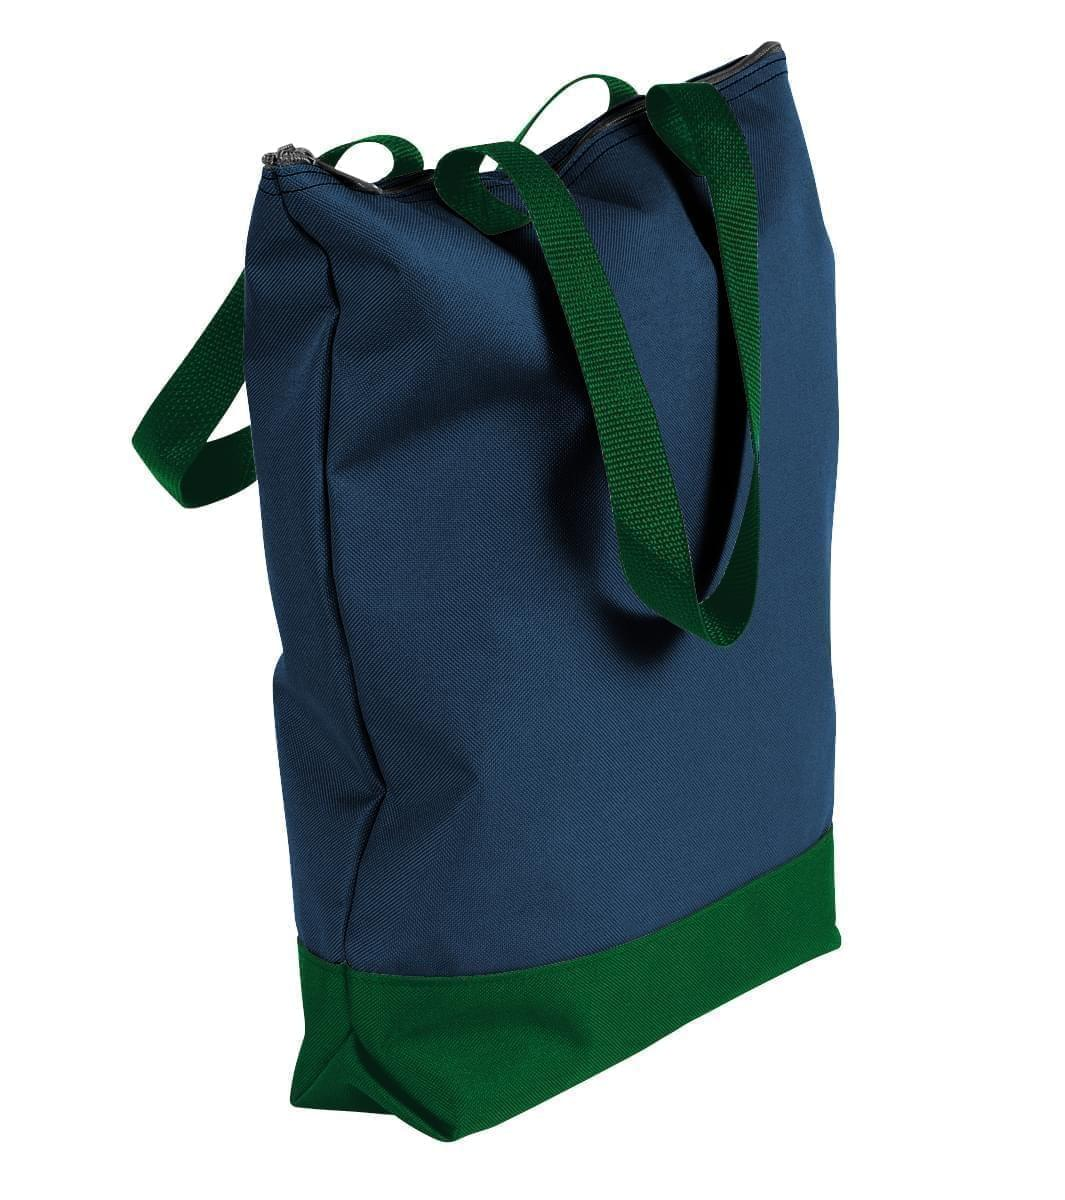 USA Made Canvas Portfolio Tote Bags, Navy-Hunter Green, 1AAMX1UACV